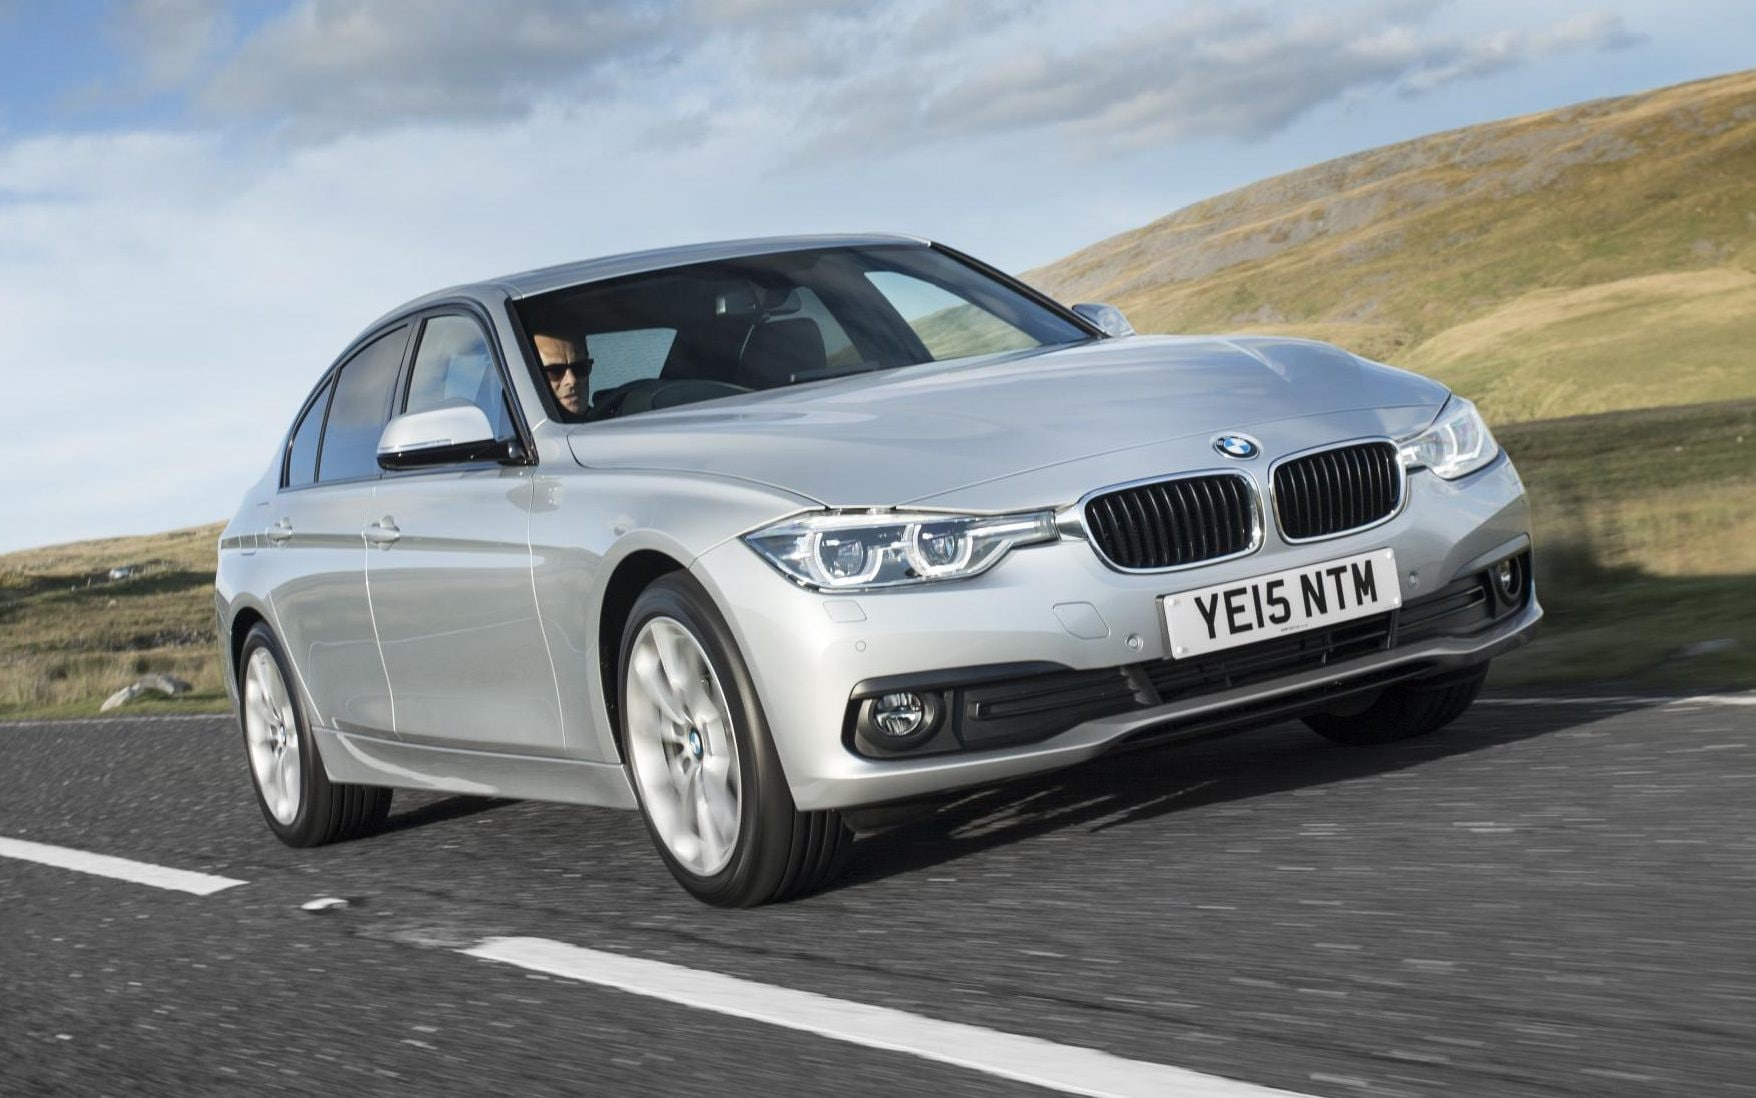 hight resolution of 2016 bmw 3 series review low running costs and fun to drive this car should be on your list